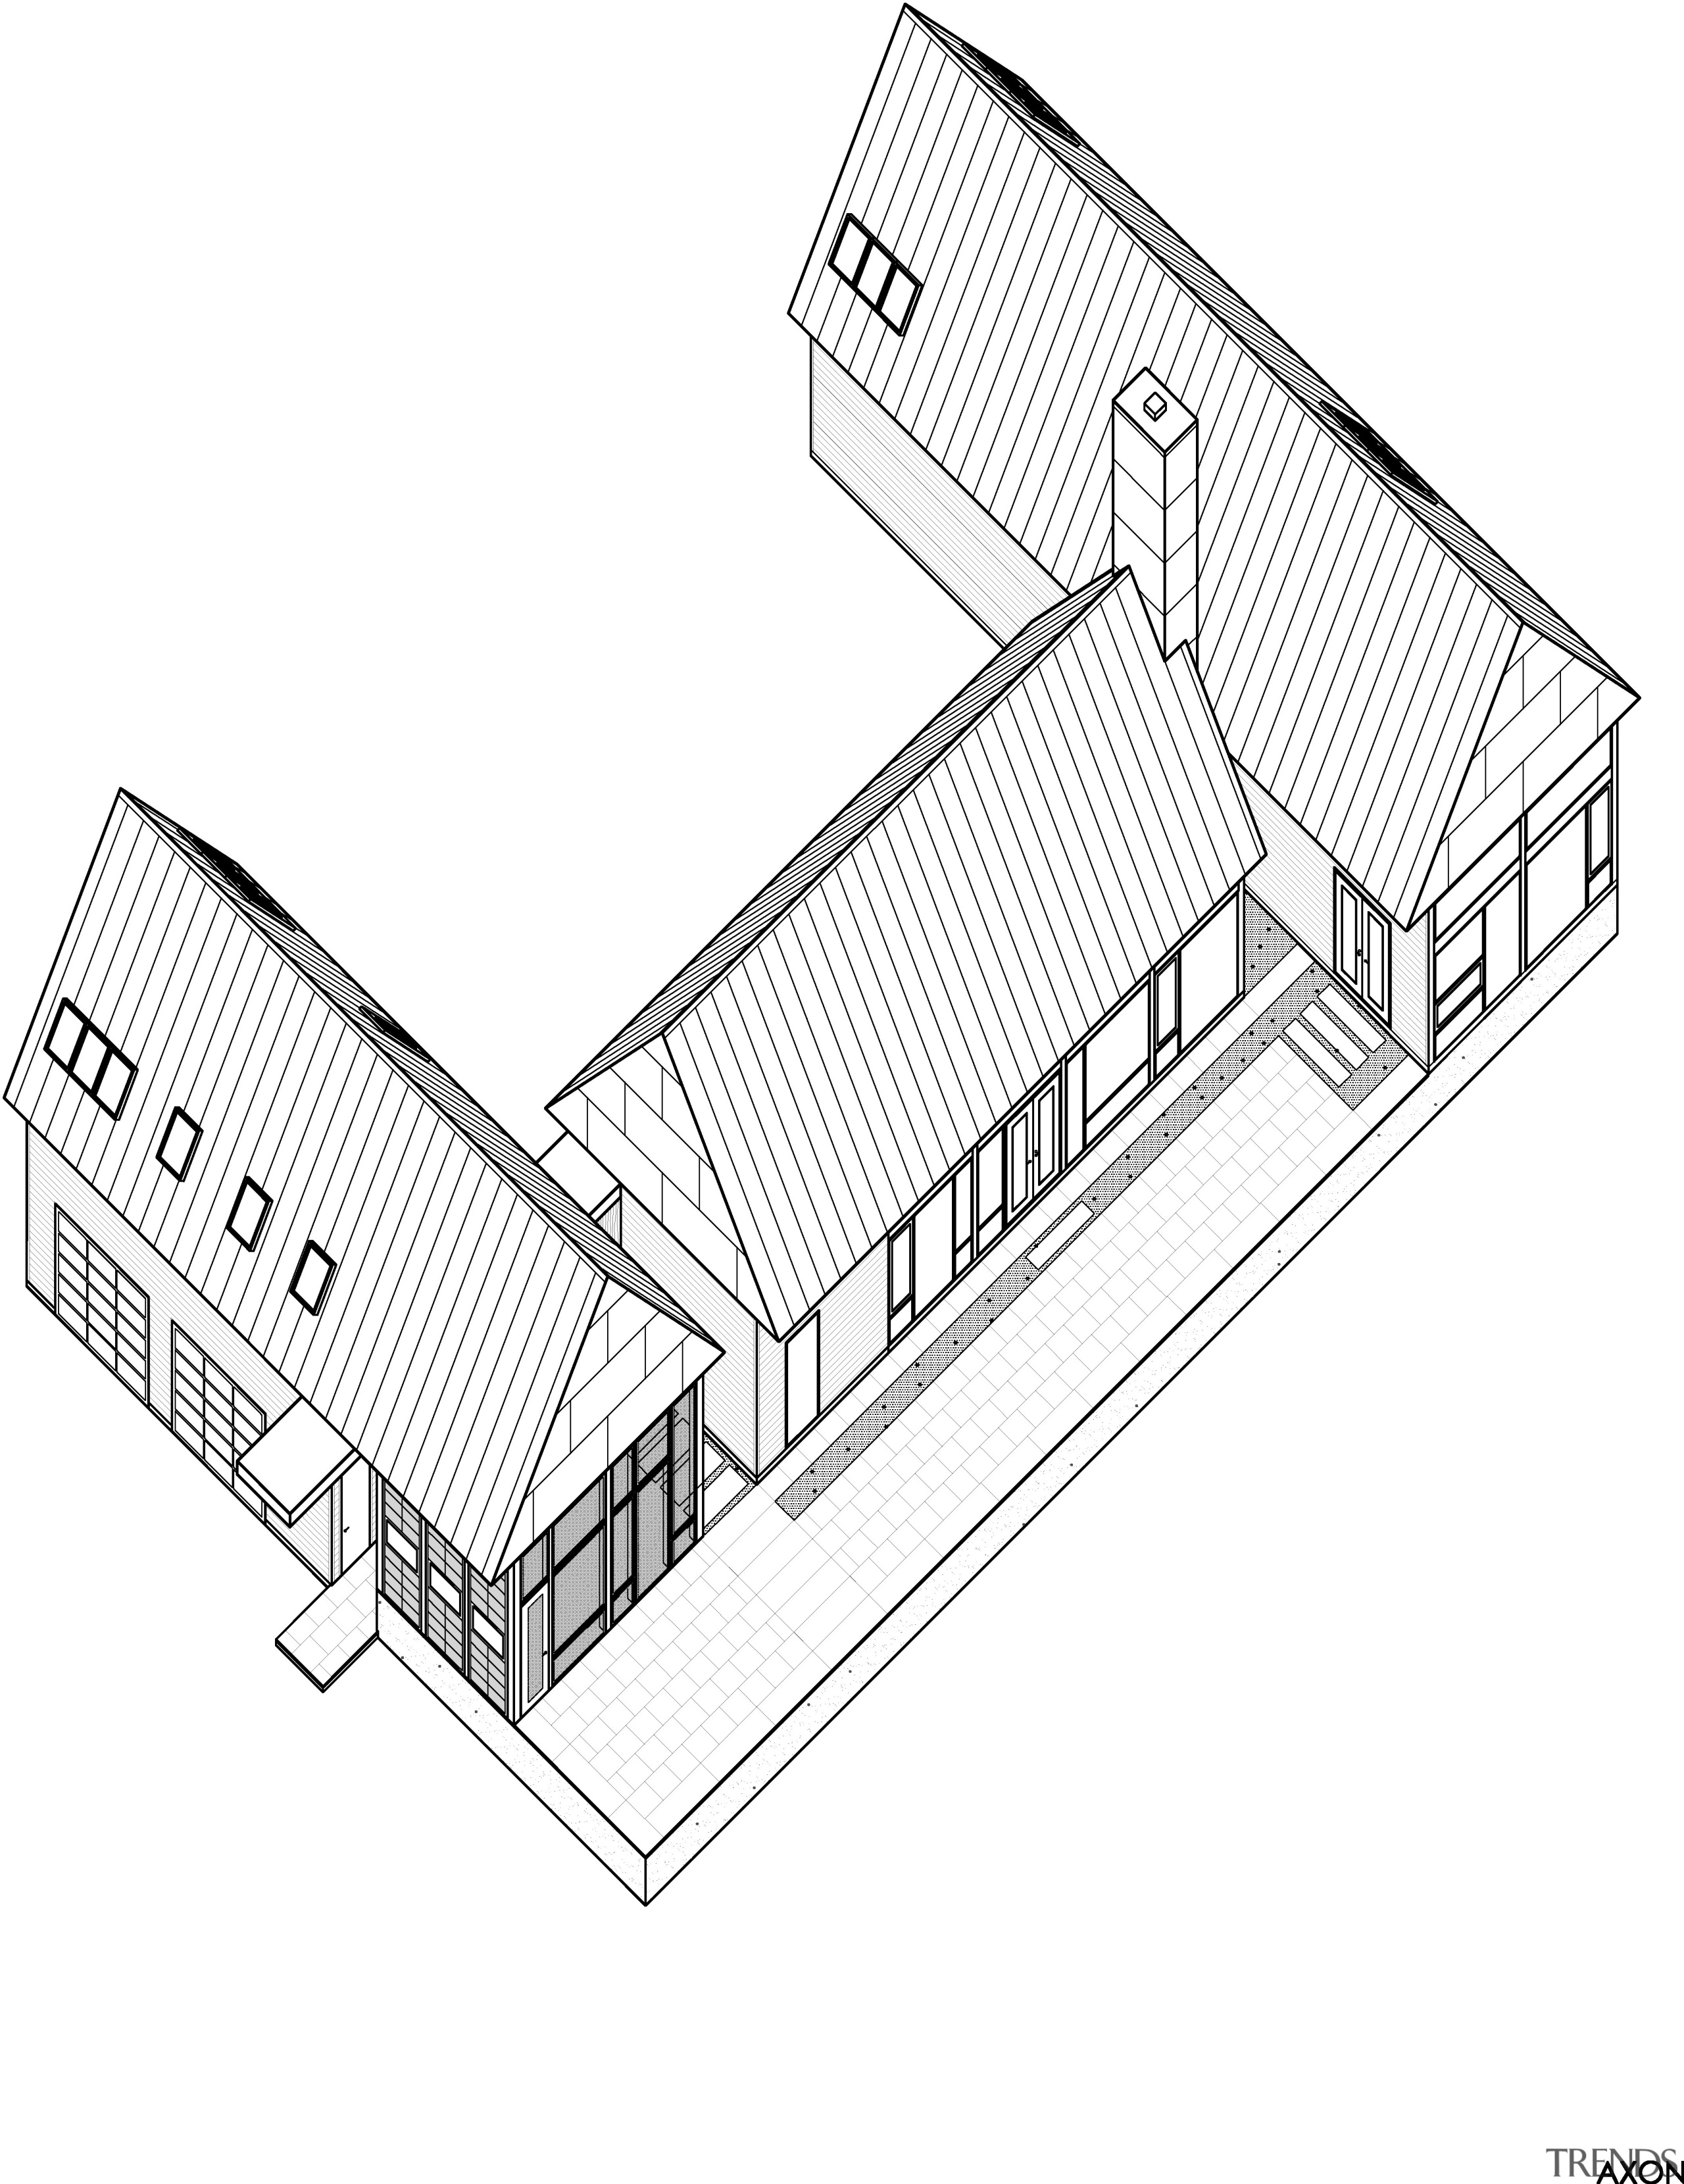 Modern country home plan by Robert M Gurney angle, architecture, area, automotive design, design, diagram, drawing, line, line art, product, product design, structure, white